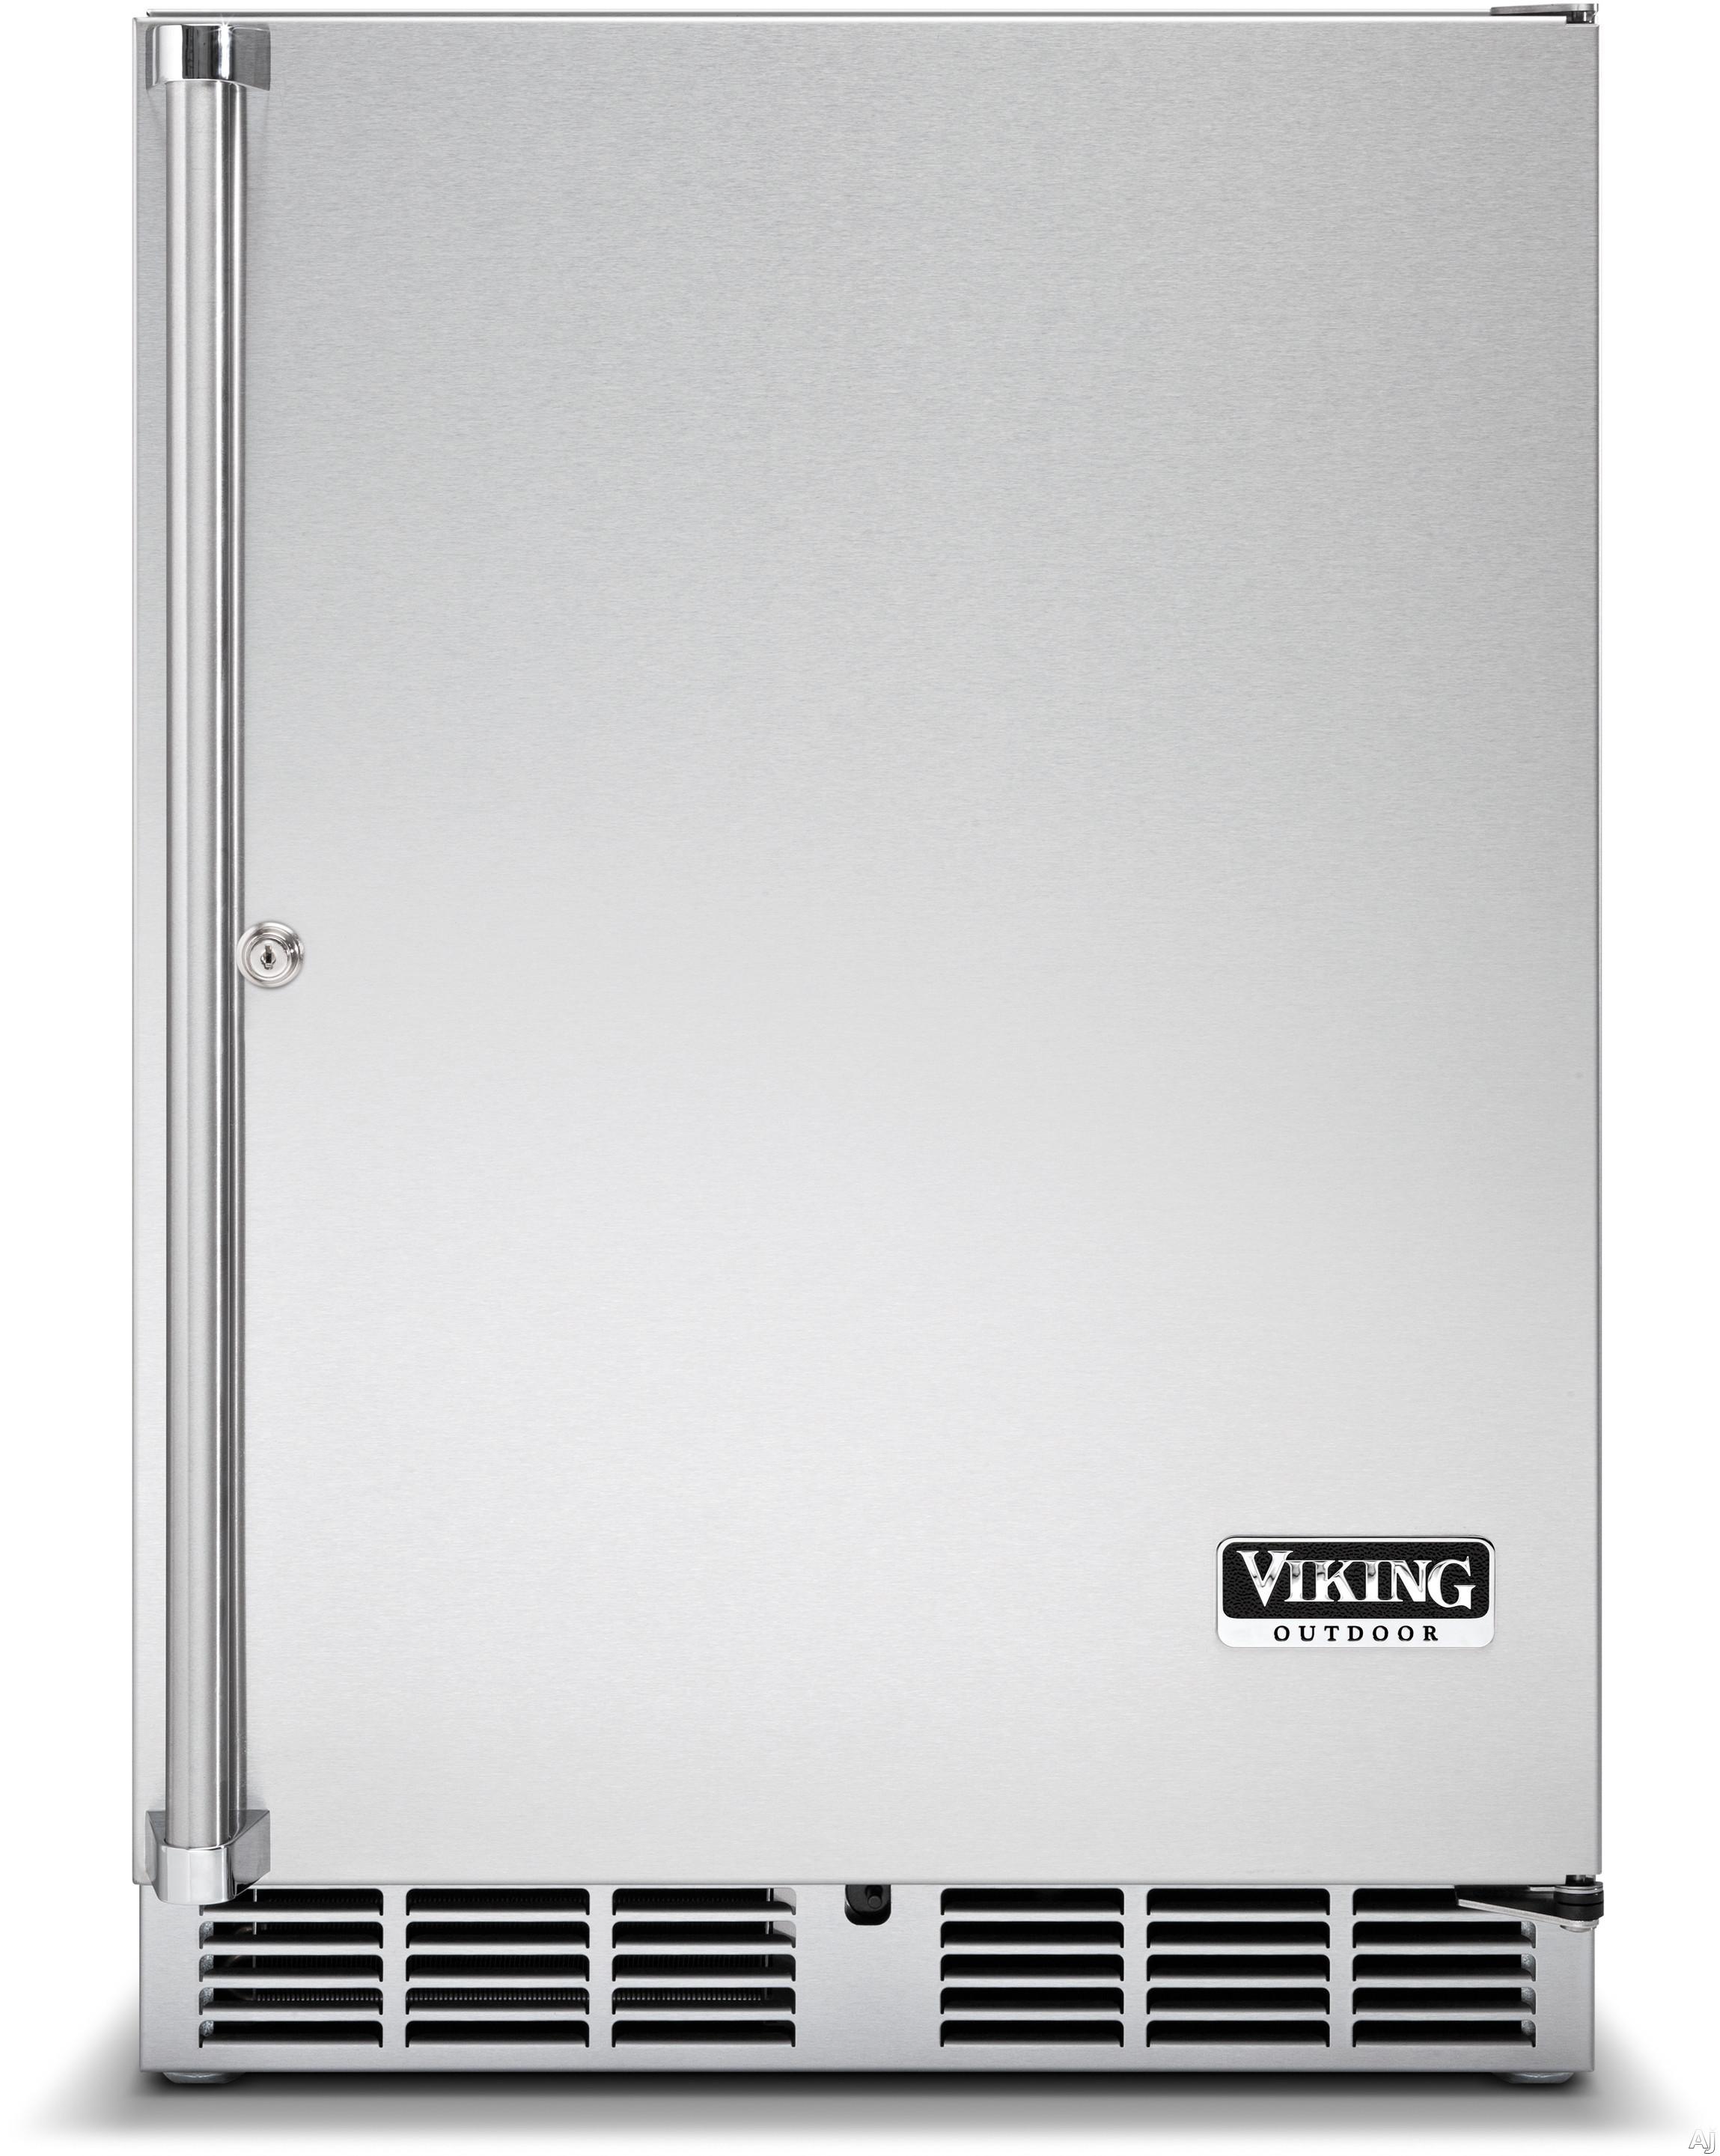 "Viking Outdoor Series VRCO5240DXSS 24"" Undercounter Outdoor Refrigerator with 5.3 cu. ft. Capacity, 2 Full Extension Wire Shelves, Door Lock, 108 12-oz. Can Capacity and LED Display Lighting"